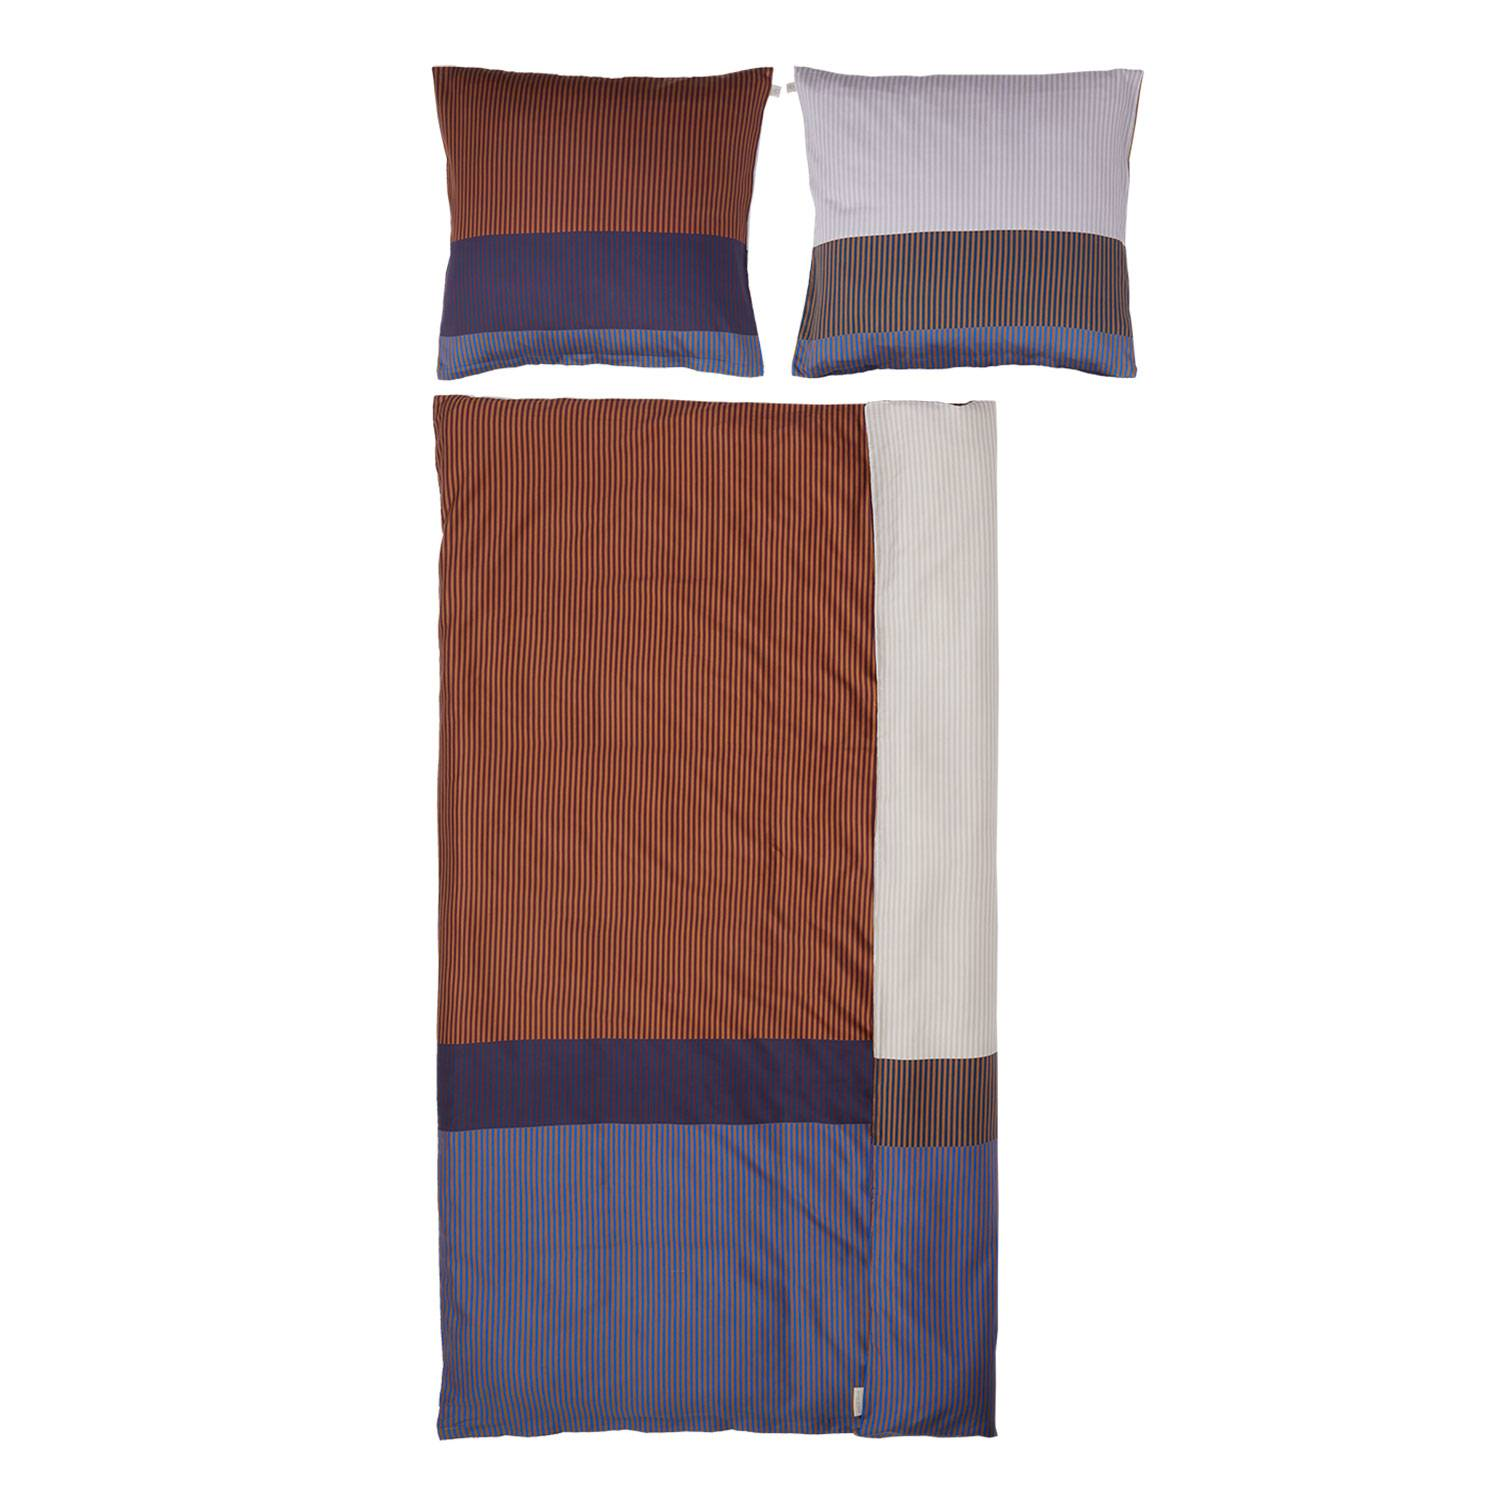 Mette Ditmer Disorder Bed Set 150x210cm, Tobacco